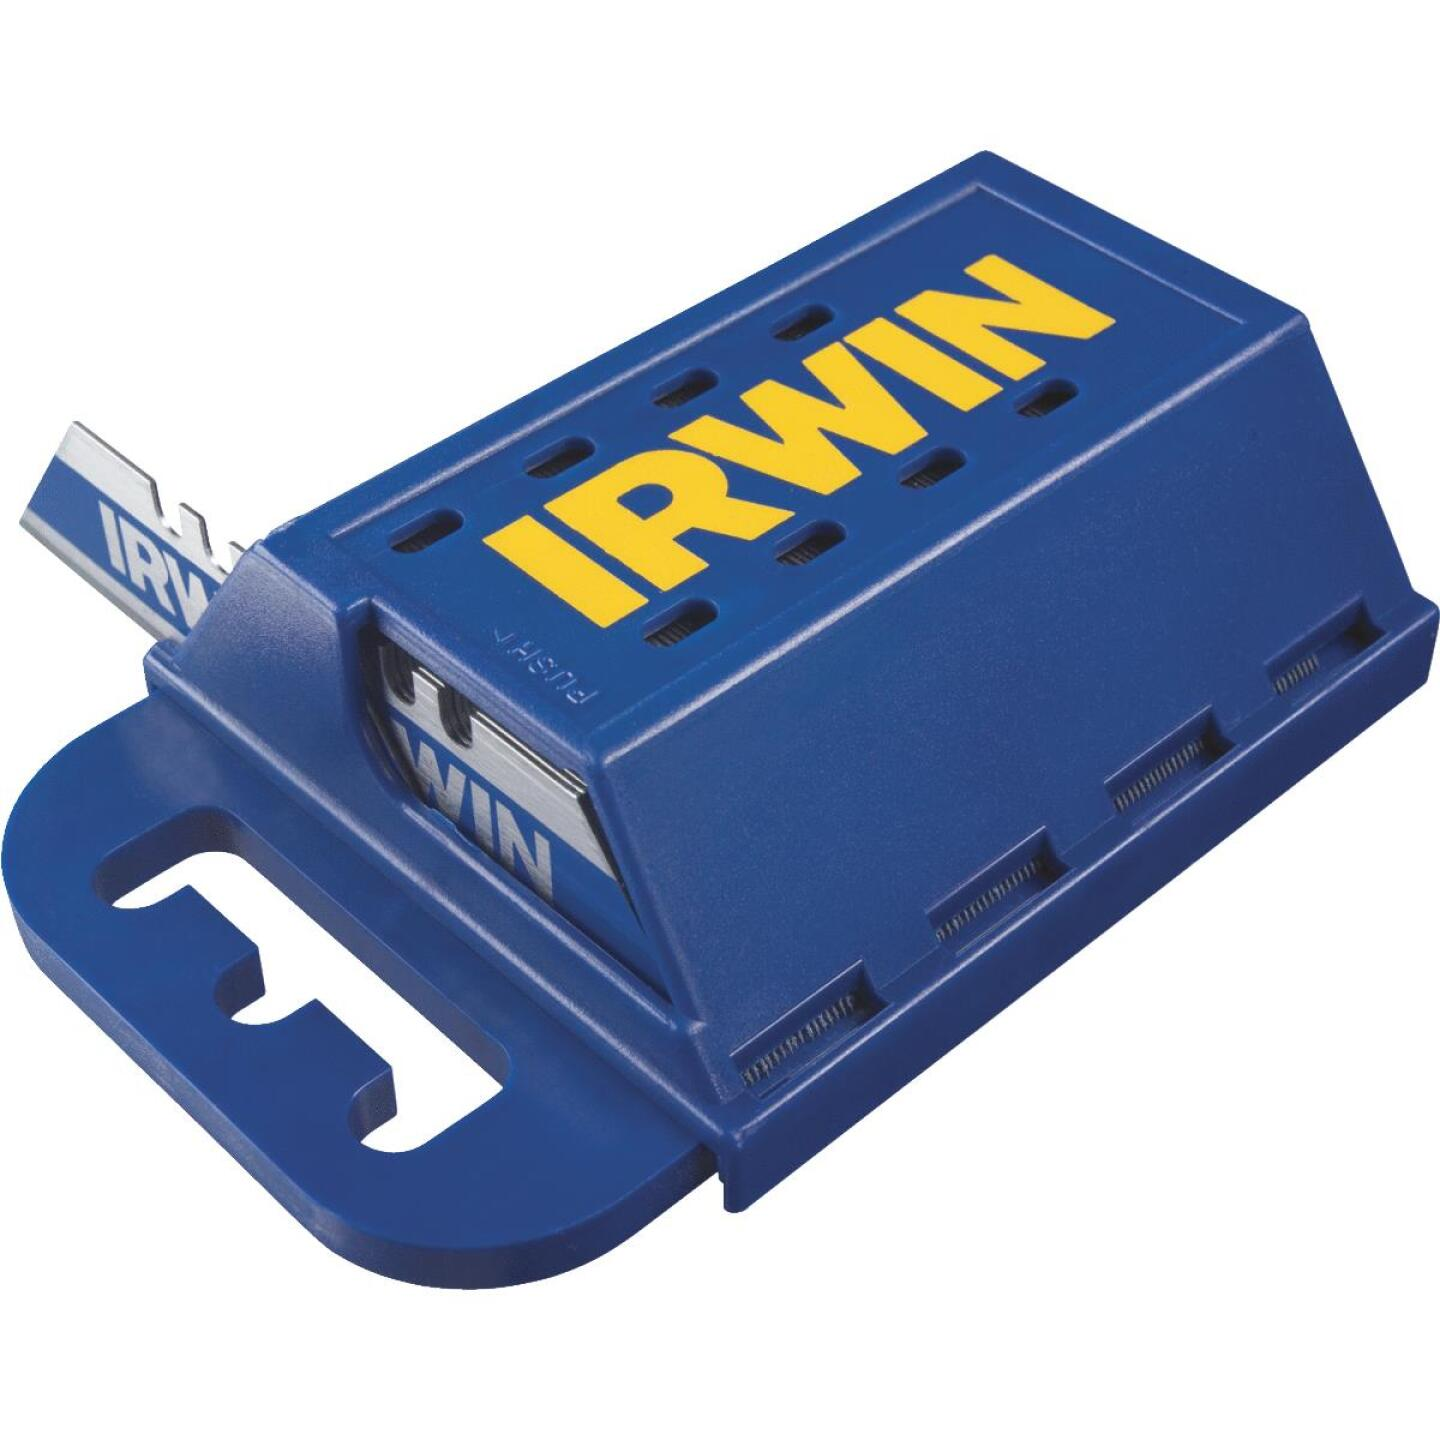 Irwin Blue Blade 2-Point 2-3/8 In. Utility Knife Blade (100-Pack) Image 1